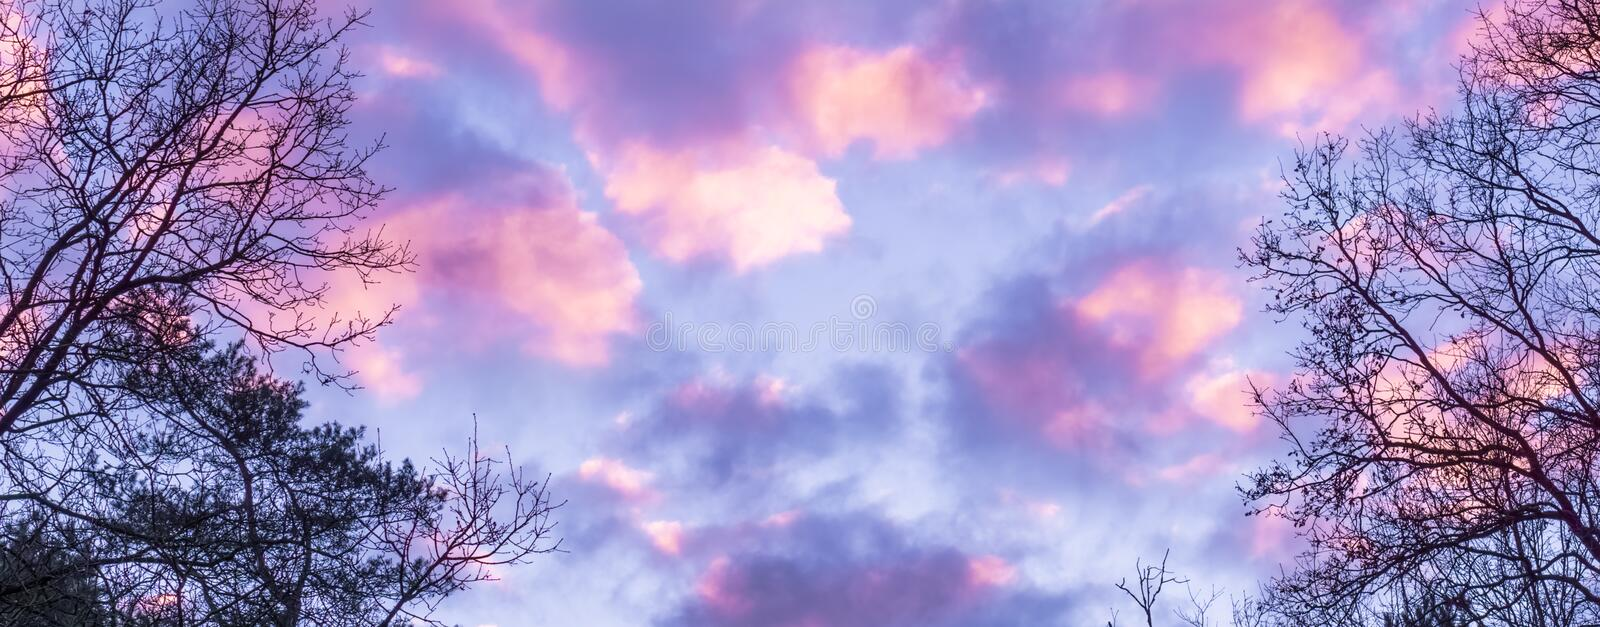 Pink and purple polar stratospheric clouds, a effect in the sky that sometimes rarely occurs in winter royalty free stock photo